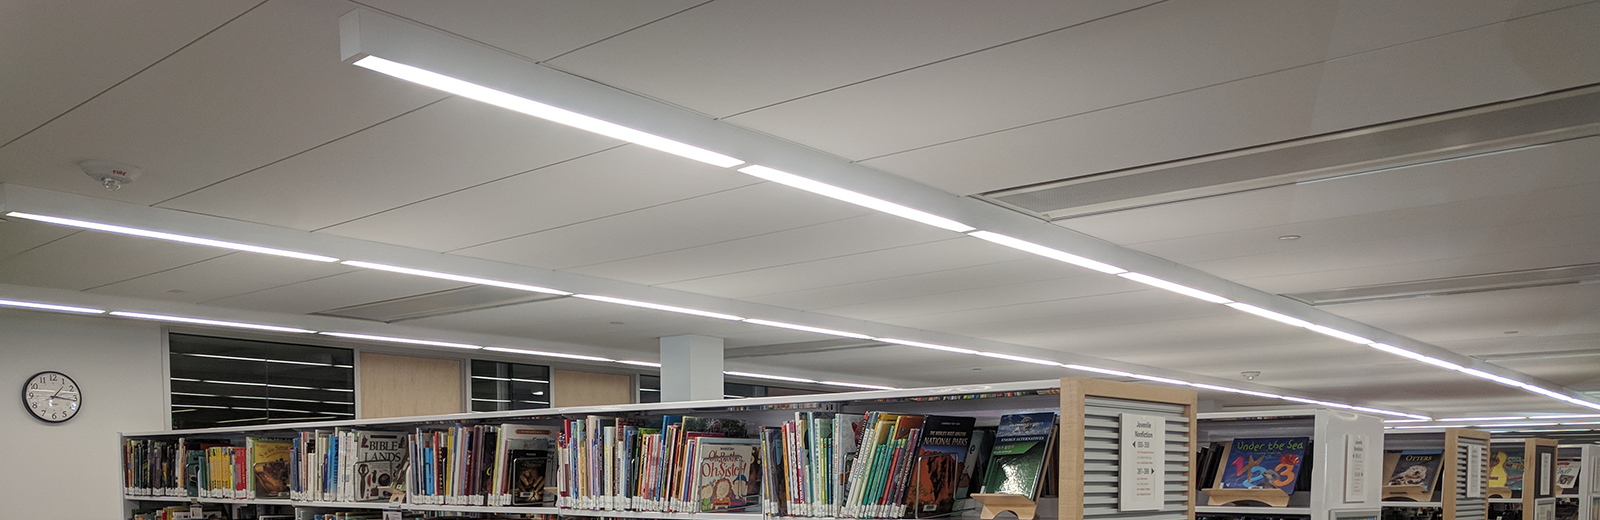 LED lighting in the library